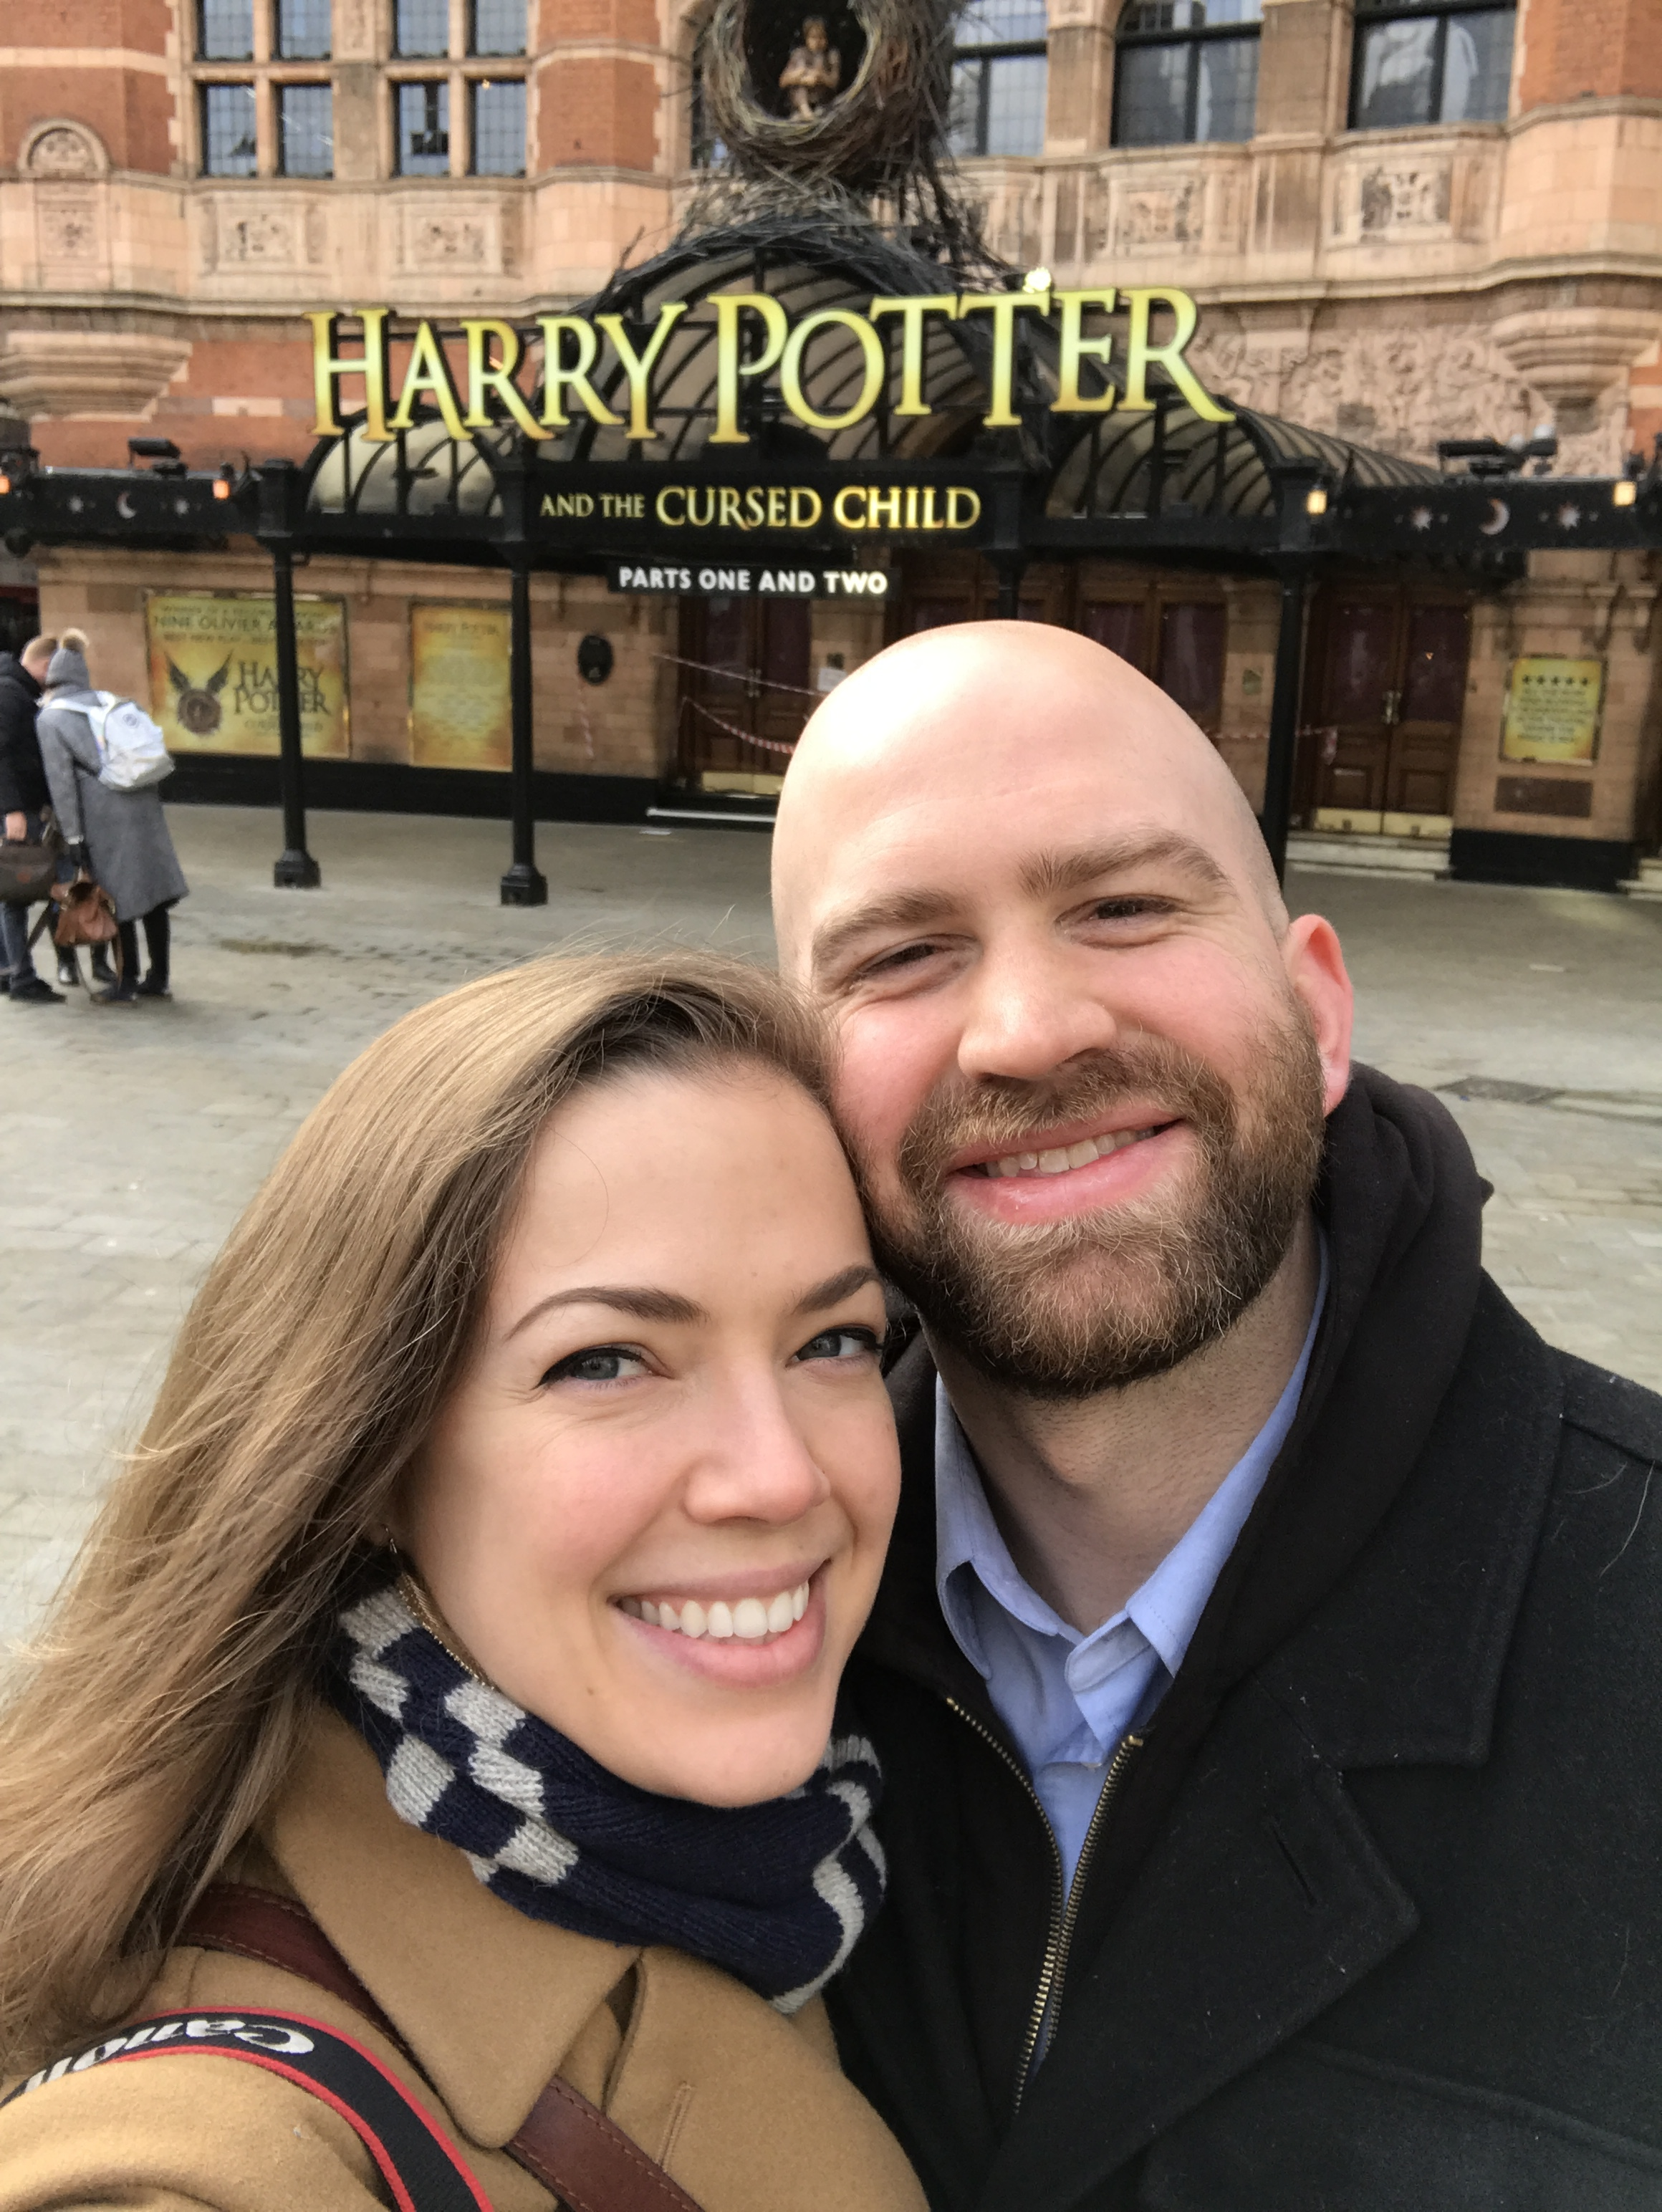 We went to London to see the Harry Potter play- it was incredible